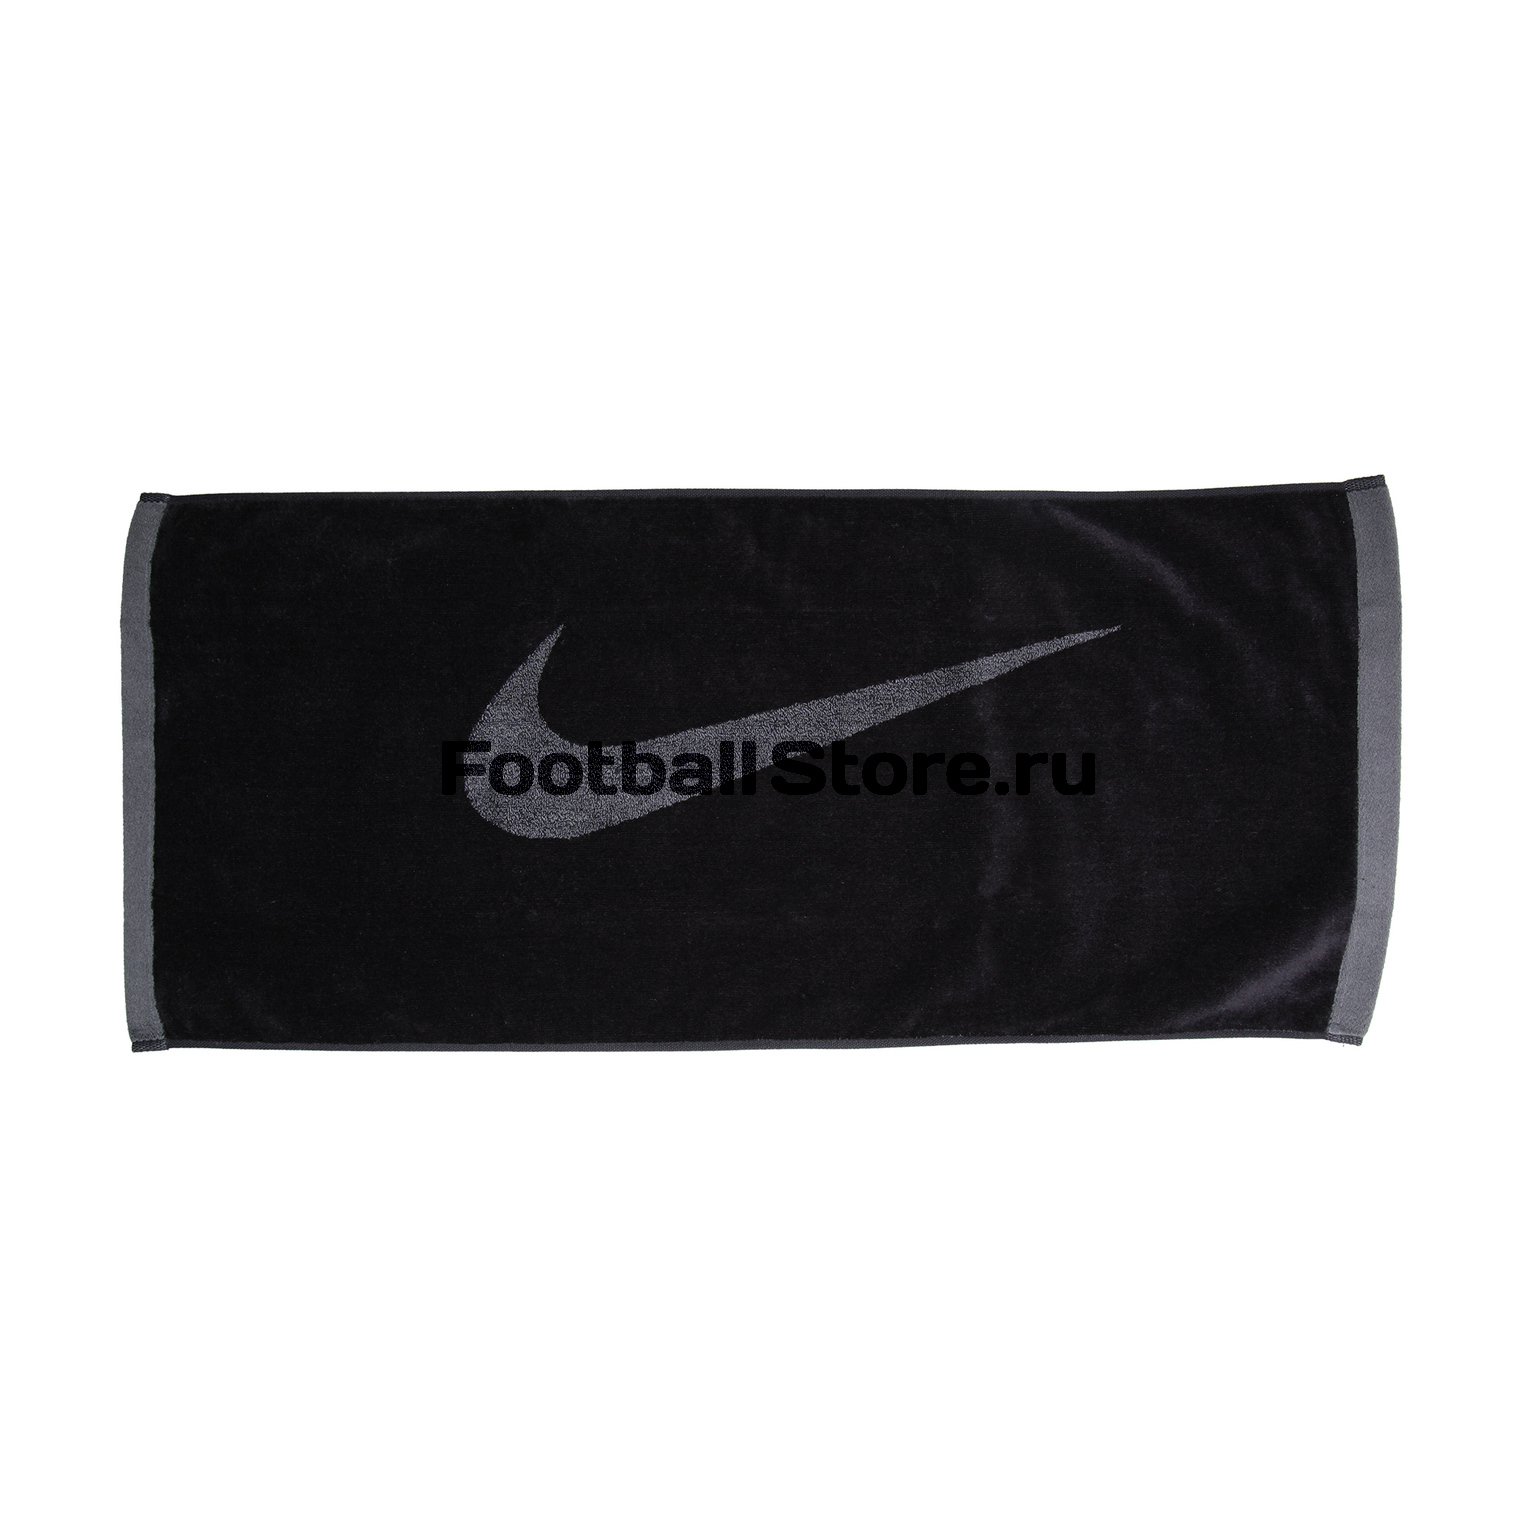 Полотенце Nike Sport Towel Black N.ET.13.046.MD стационарный блендер kitfort kt 1312